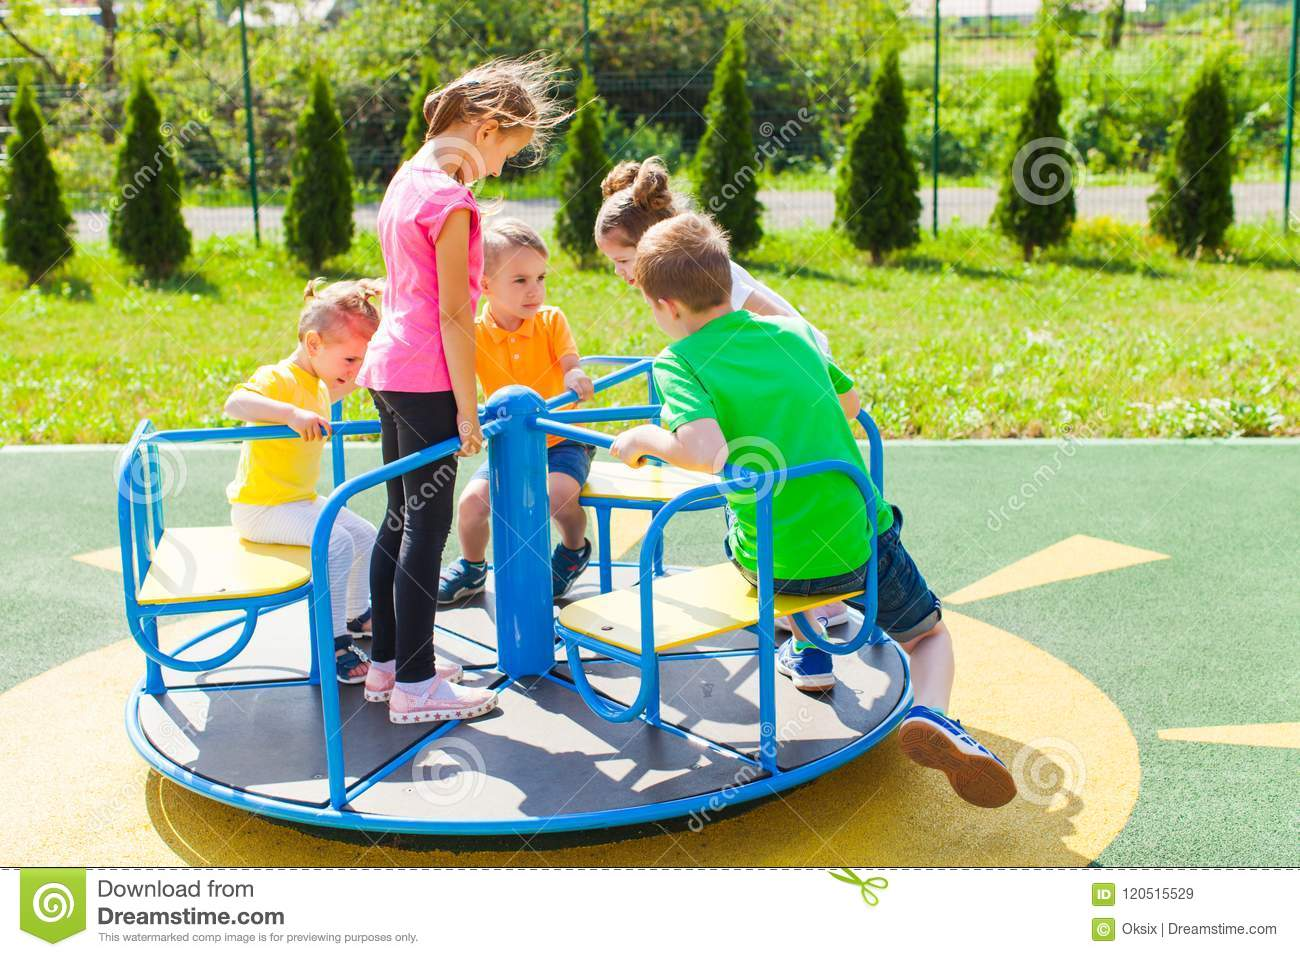 56549242f Friendship On The Playground Stock Image - Image of casual ...